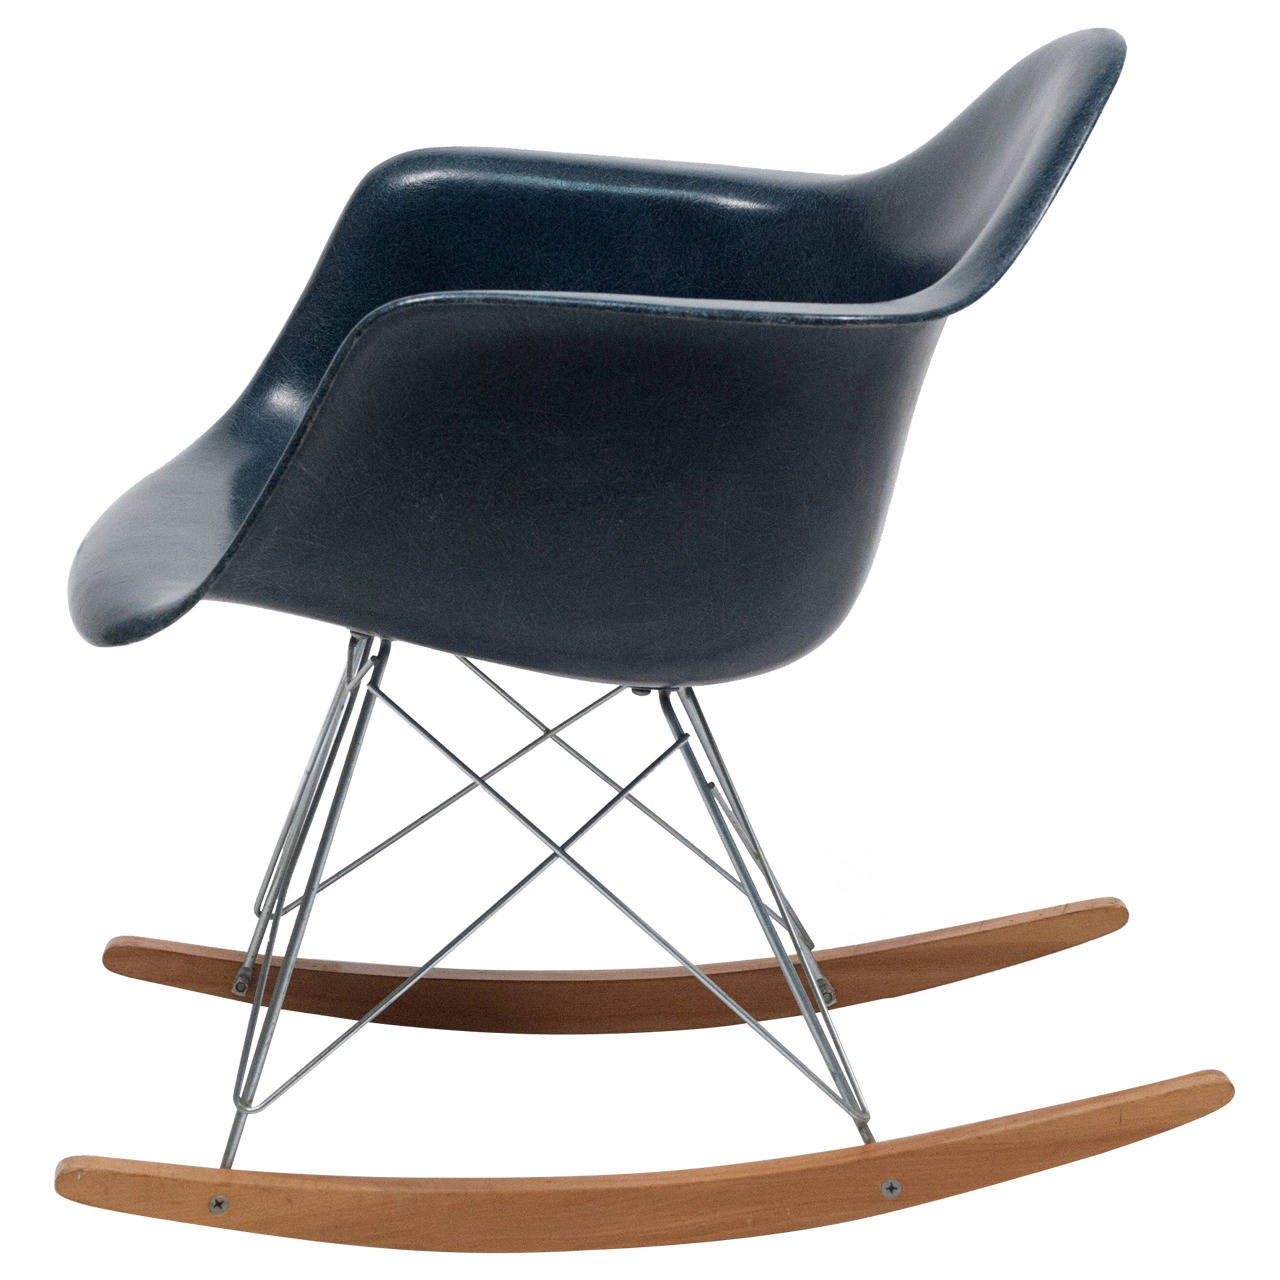 Eames Navy Blue Shell Herman Miller Rocking Chair, 1962